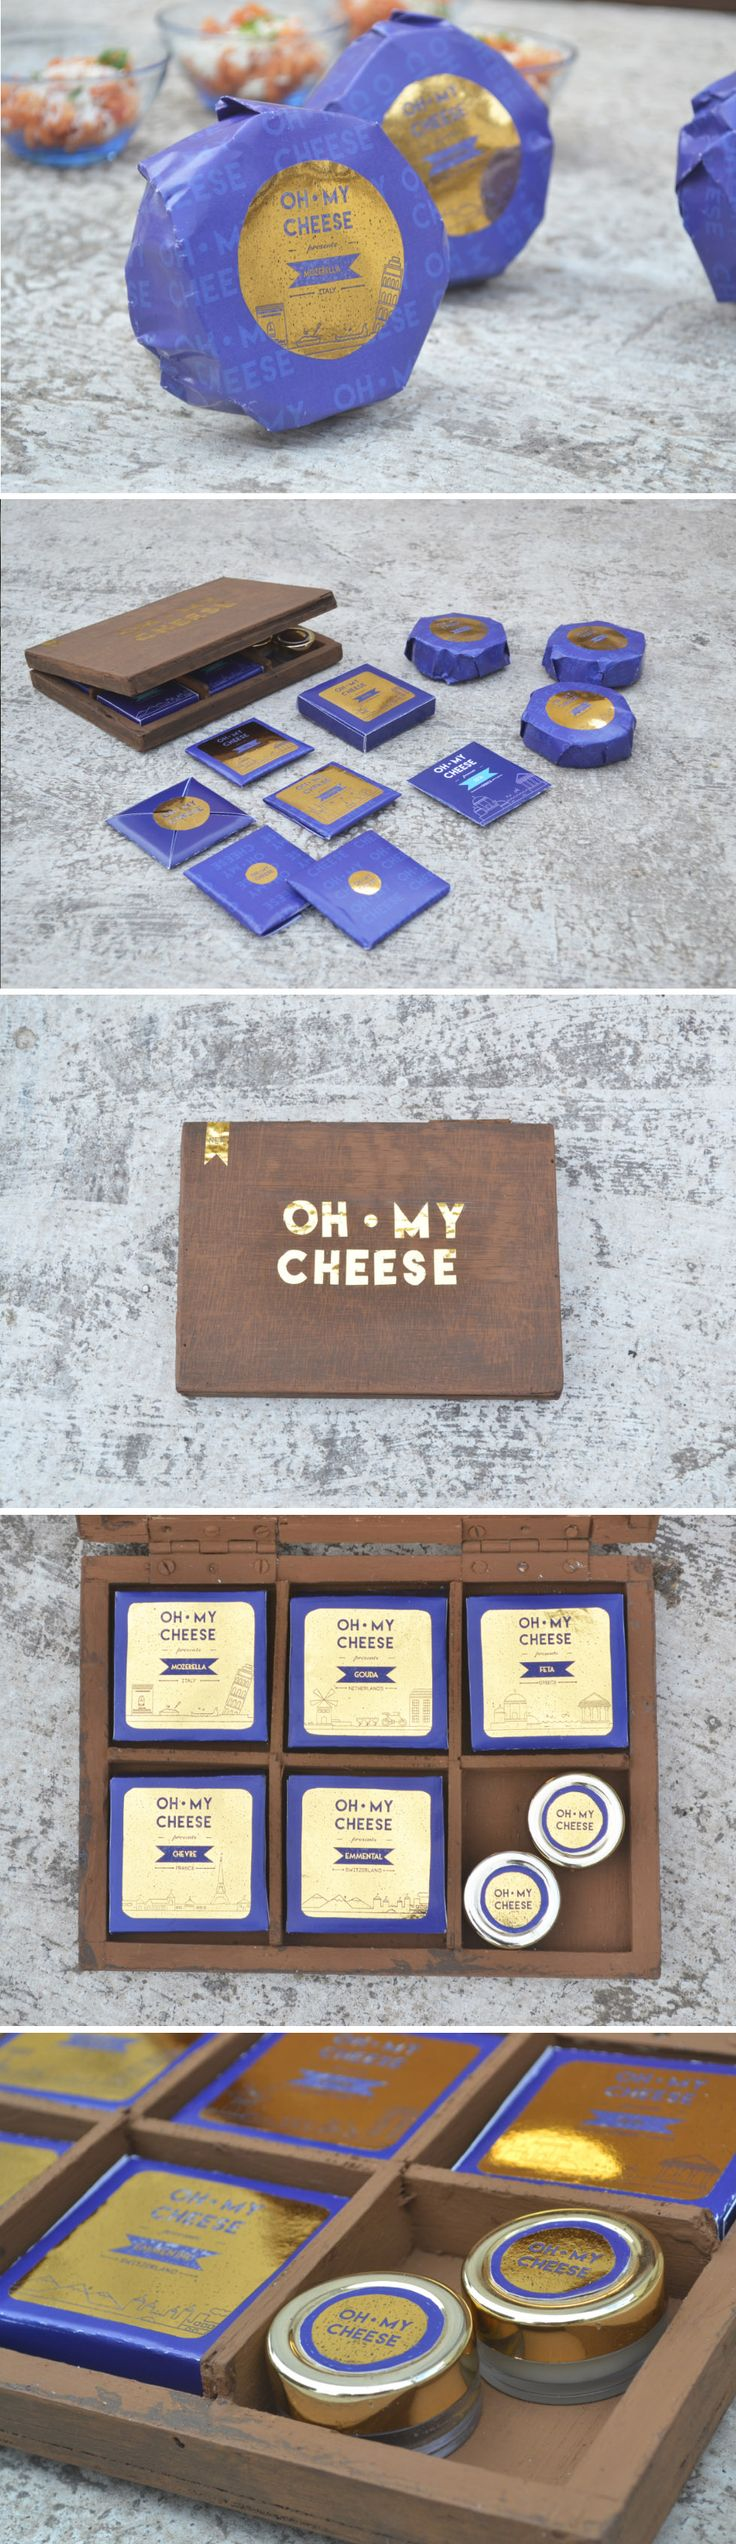 Oh My Cheese Student Packaging Design Concept